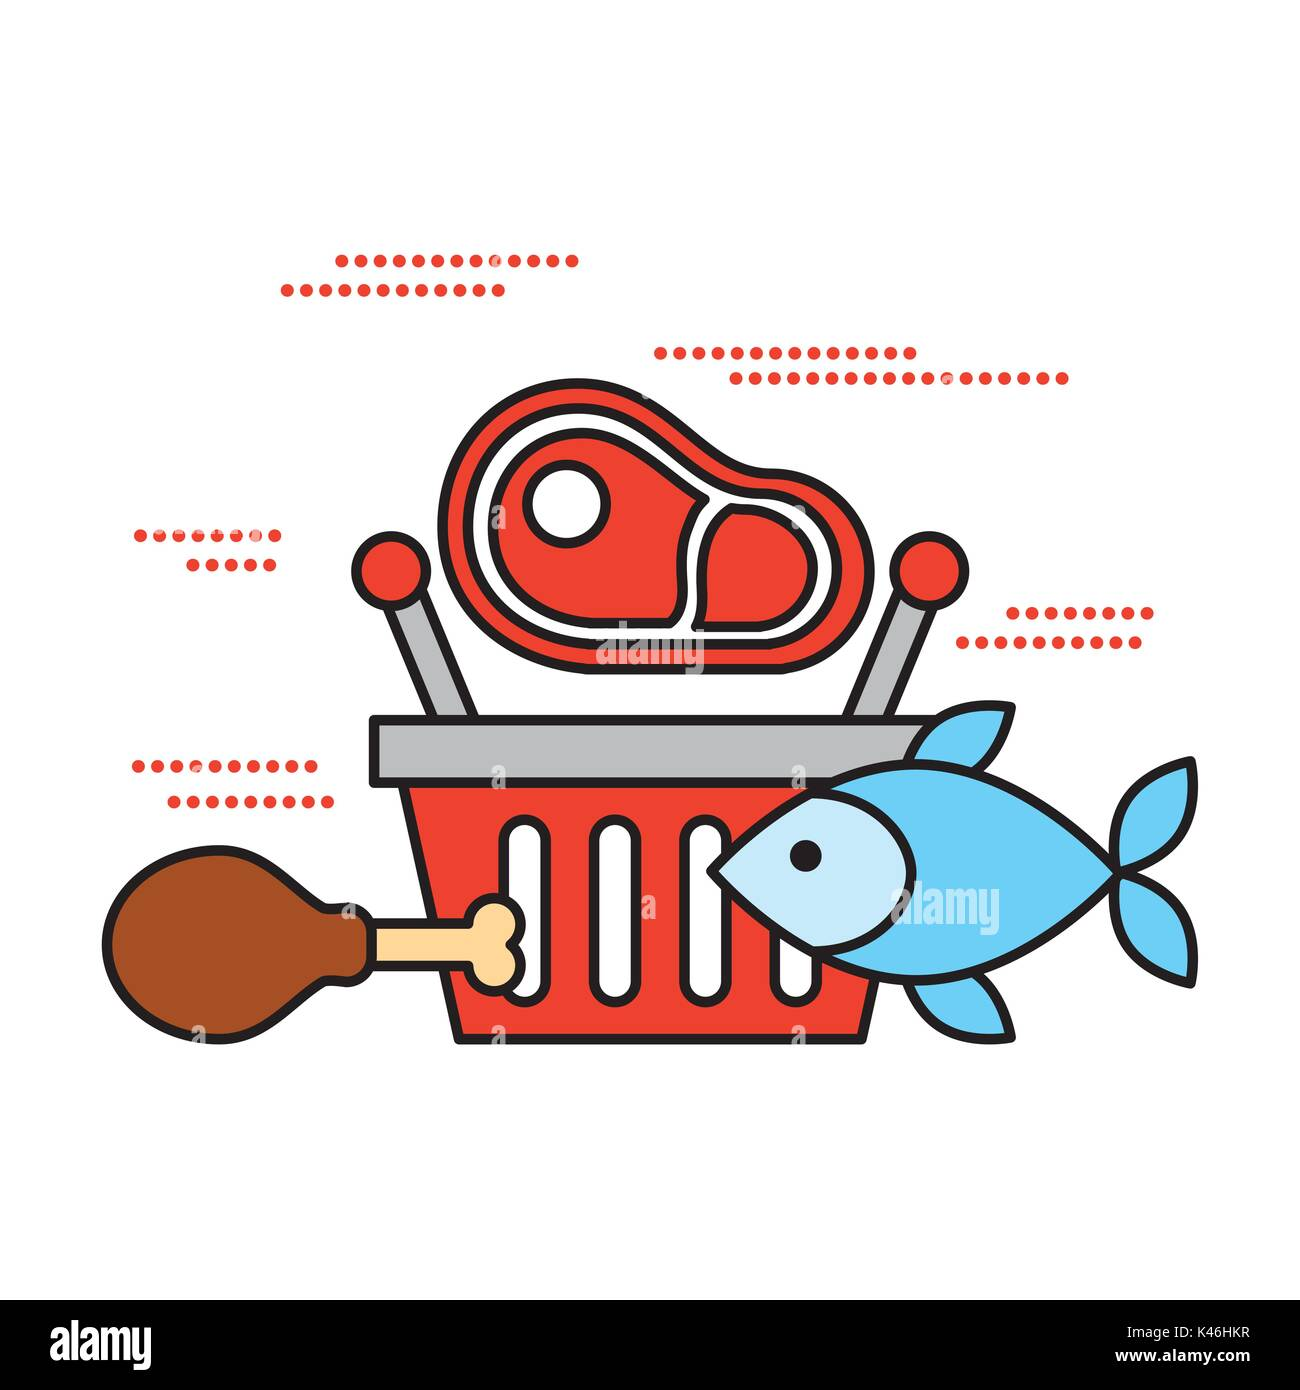 Meat fish market stock photos meat fish market stock for Sea city fish and chicken